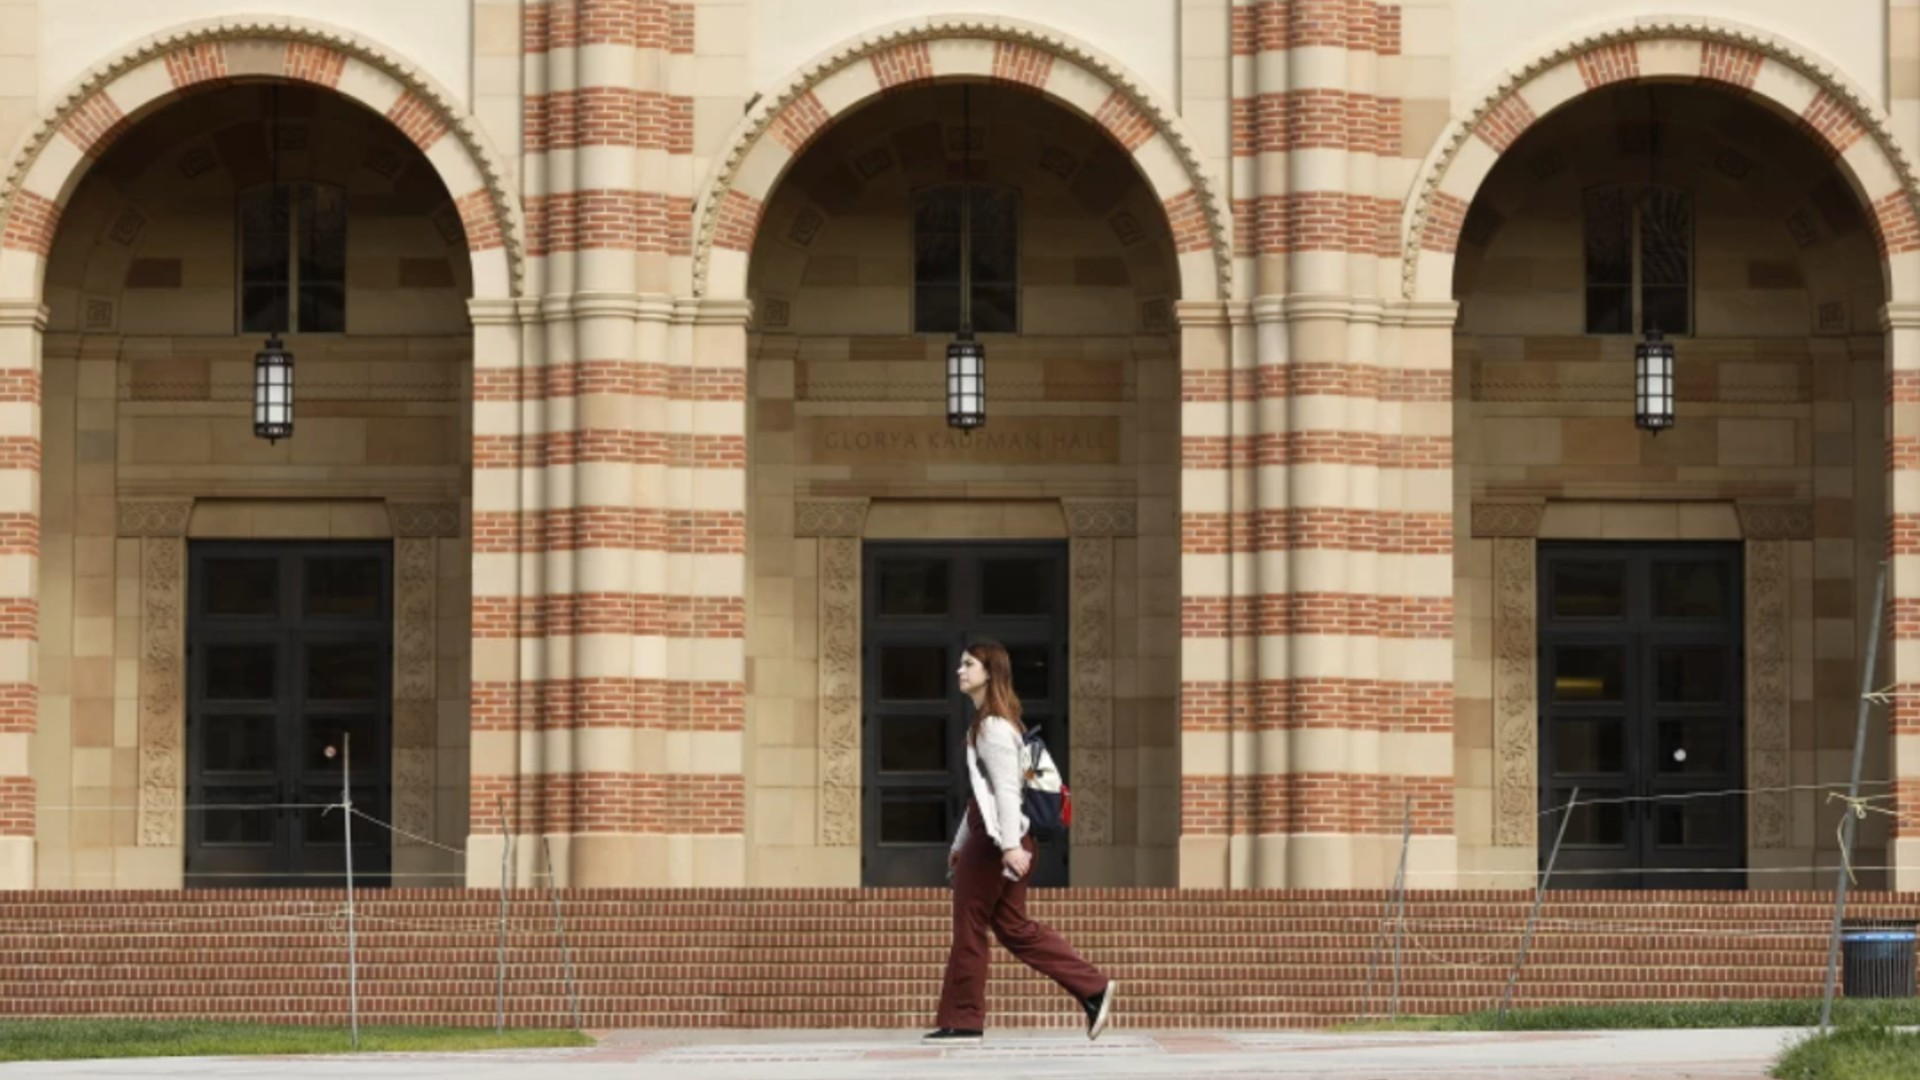 A student strolls the UCLA campus, which admitted the most accomplished freshman class ever for fall 2021. (Christina House / Los Angeles Times)